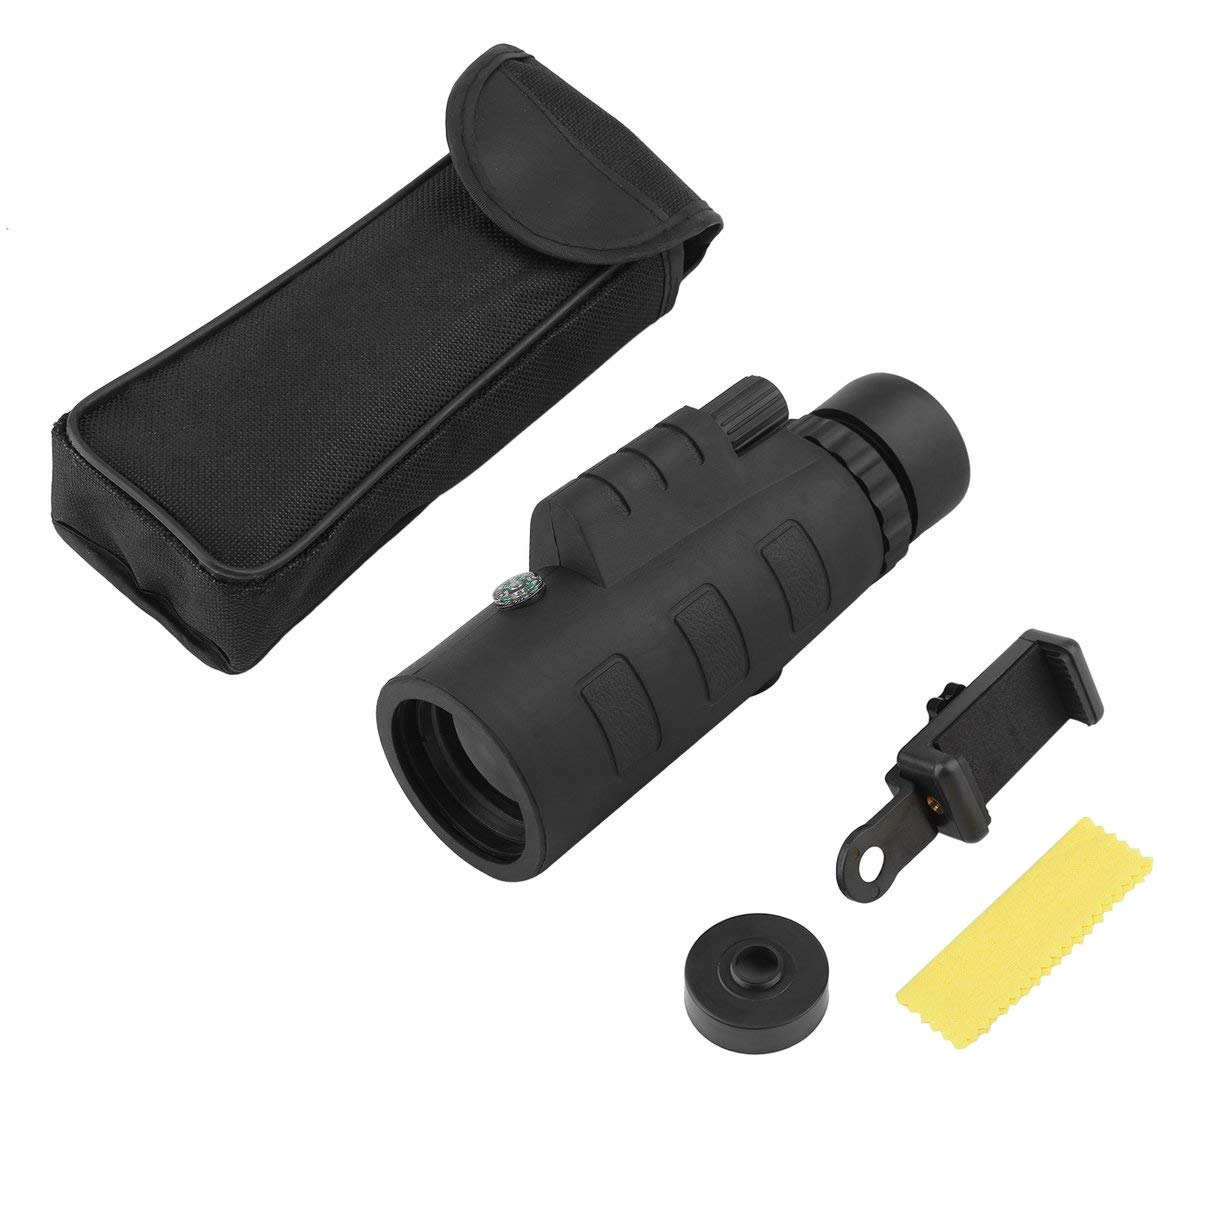 Outdoor Day Night Vision 40X60 1500m/9500m HD Green Film Optical Monocular Telescope with Clip for Hunting Hiking Sport